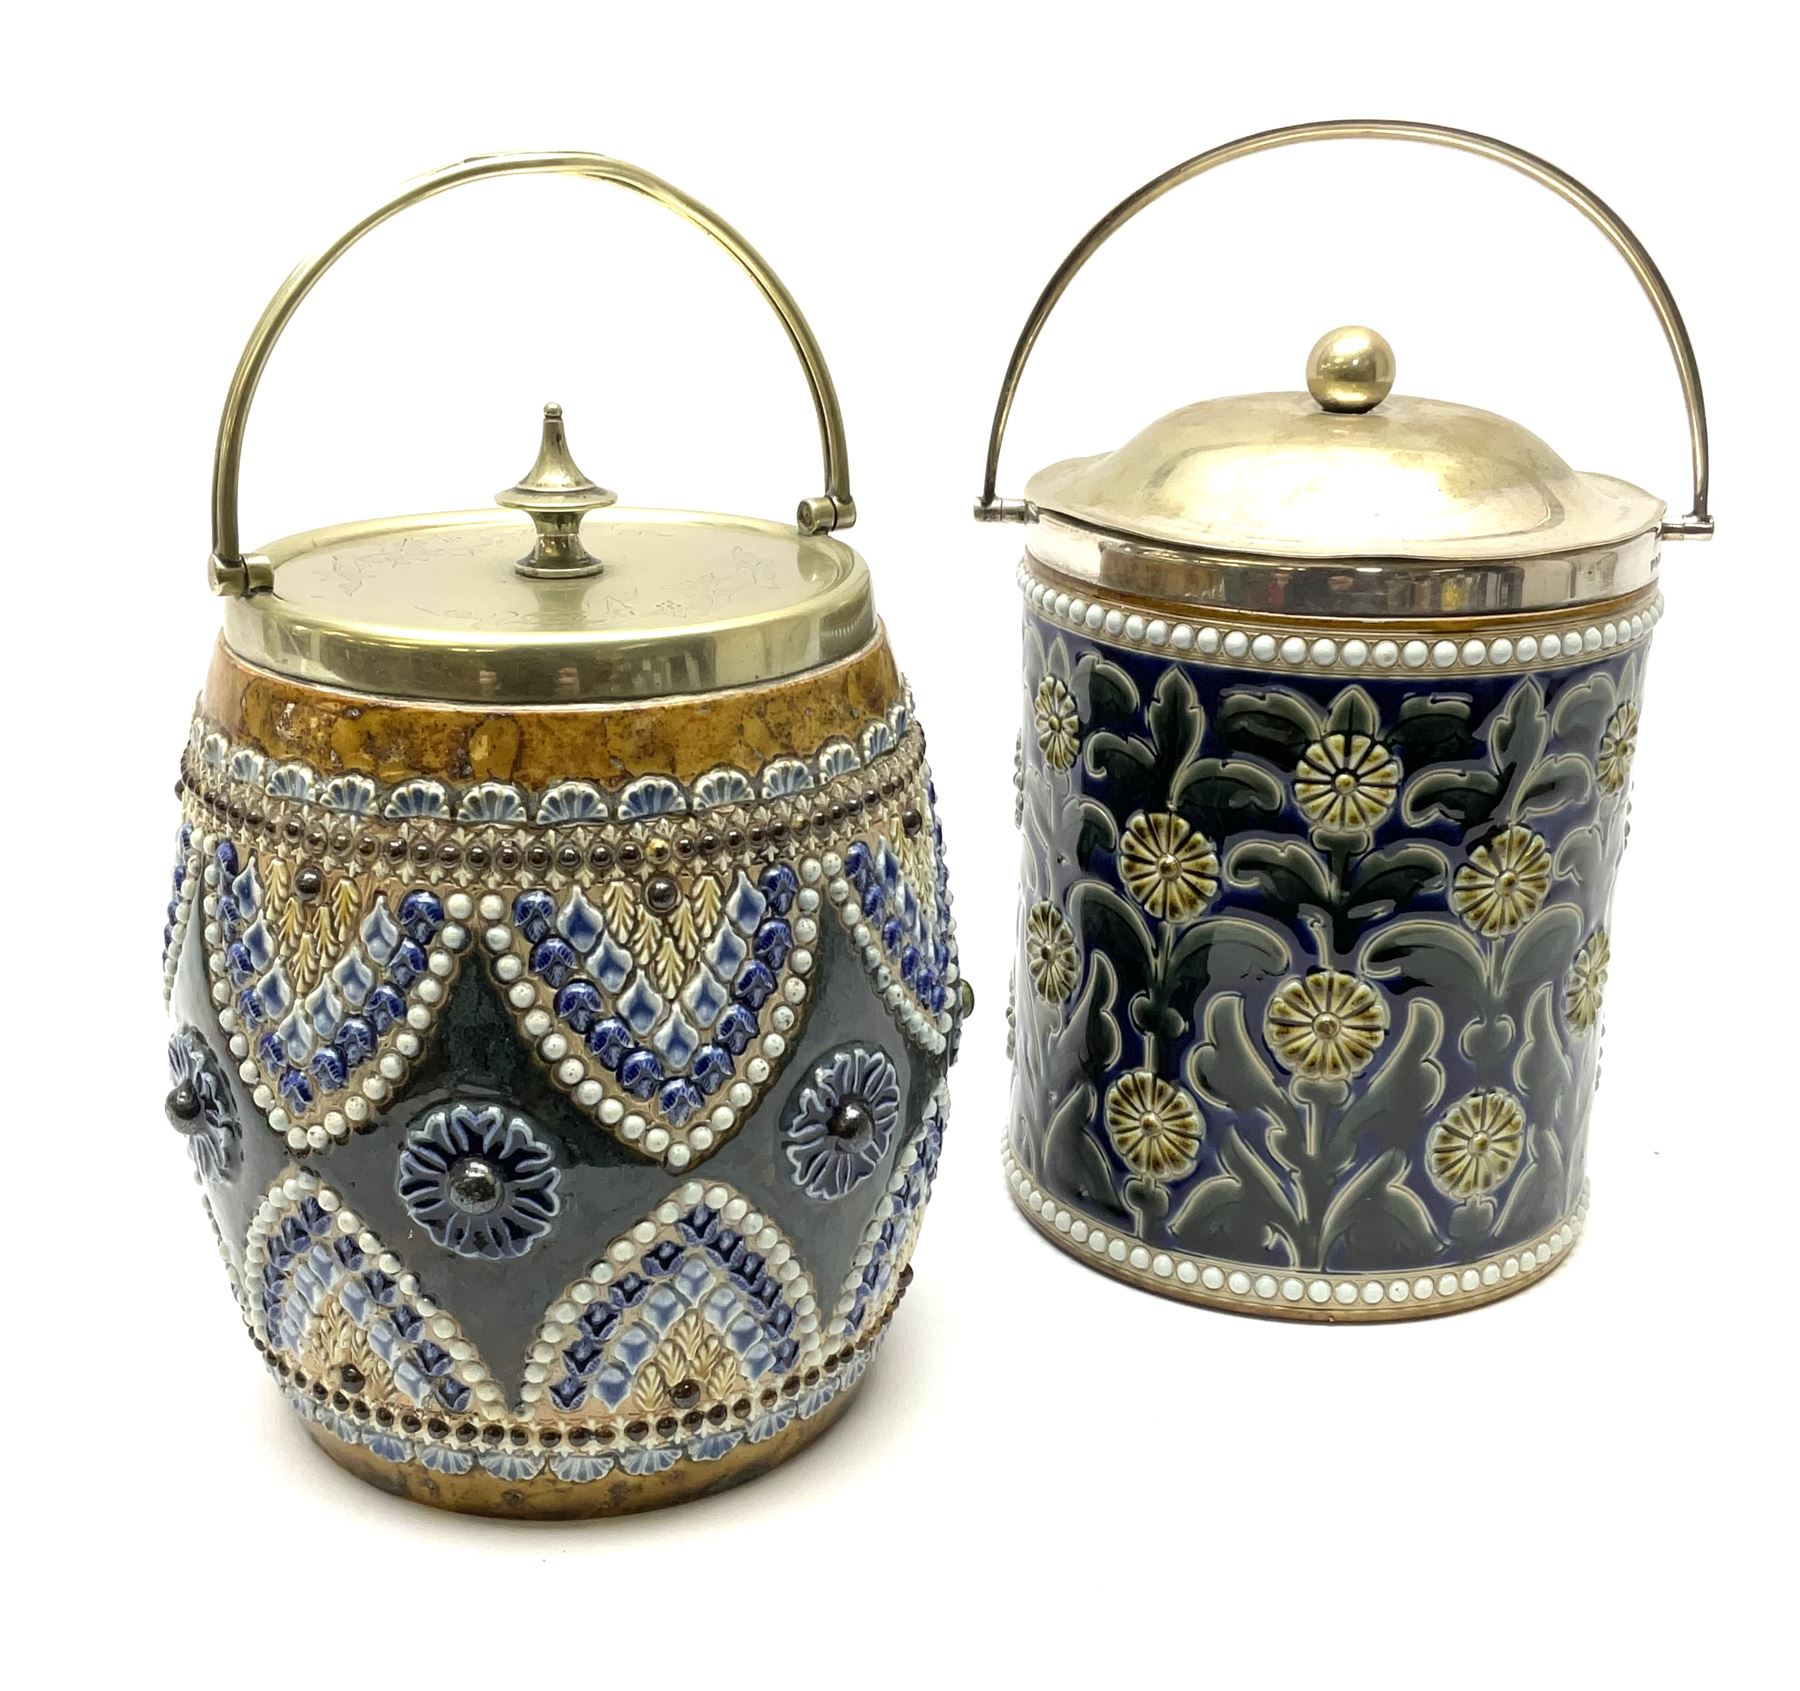 A 19th century Doulton Lambeth stoneware tobacco jar with a silver plate lid